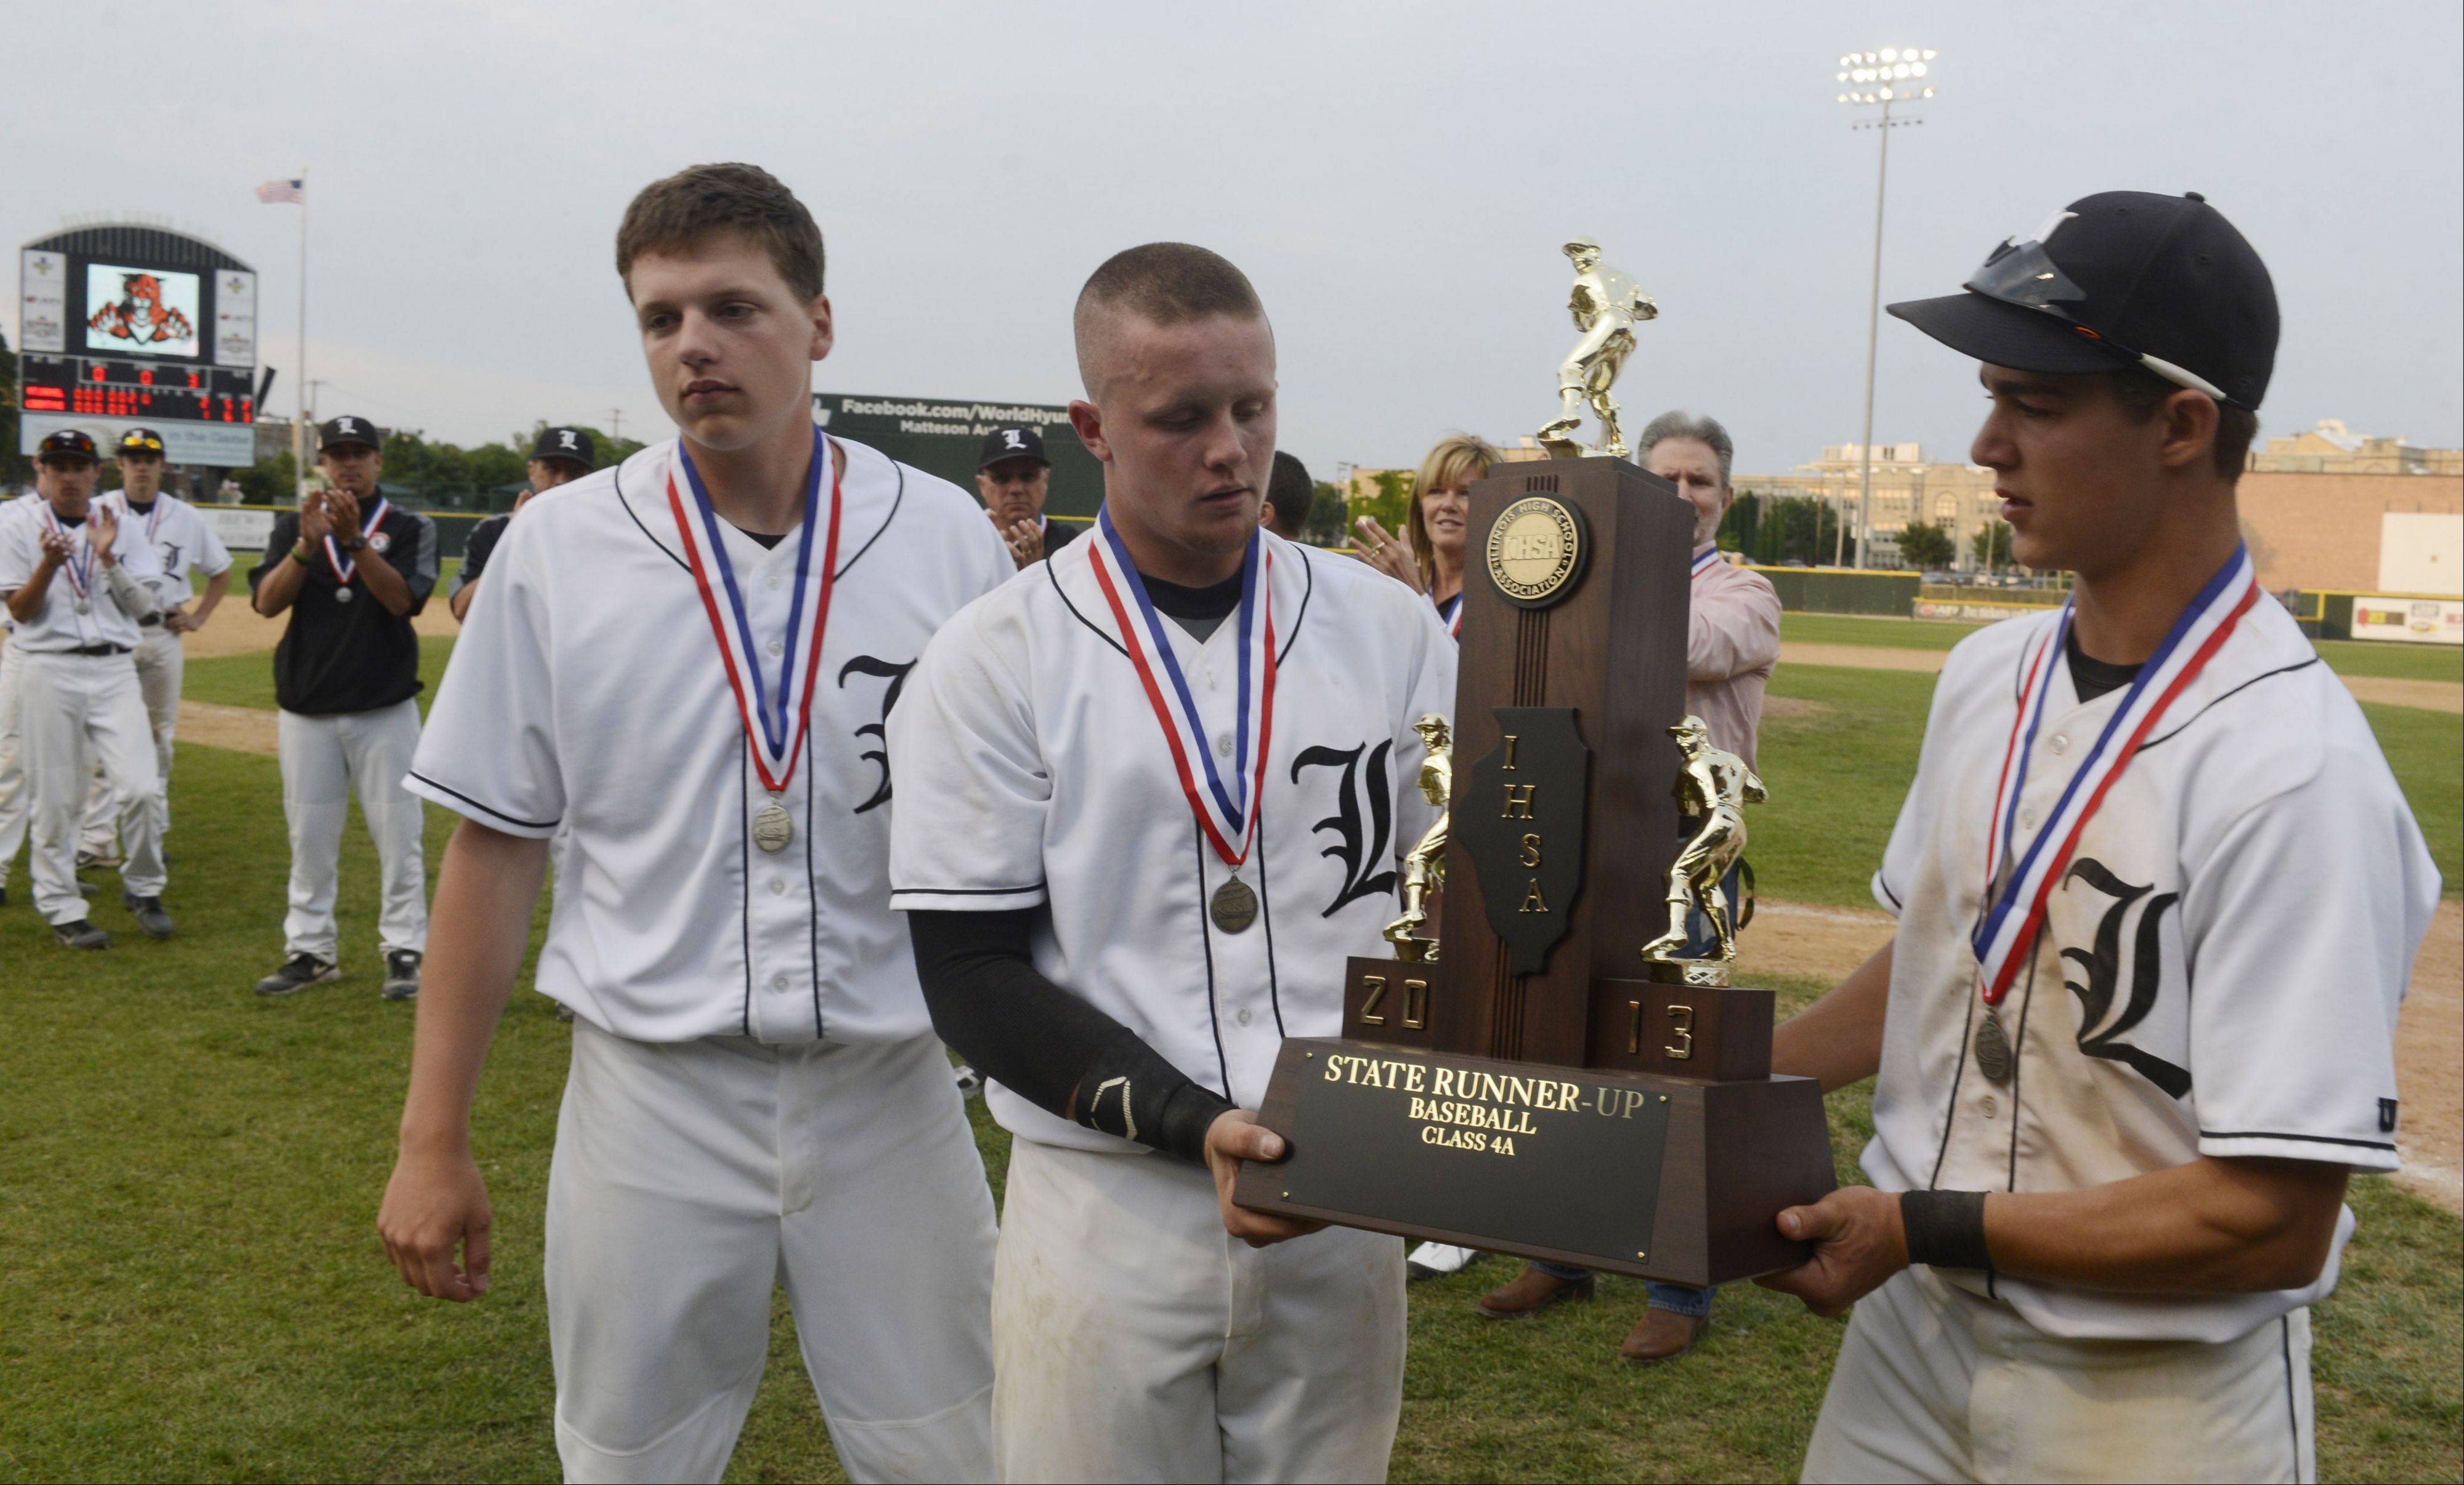 Libertyville players Matt Vogt, left, Evan Skoug, center, and Justin Guarnaccio hold the second-place trophy following their 2-1 loss to Mt. Carmel Saturday in the Class 4A state baseball championship game at Silver Cross Field in Joliet.